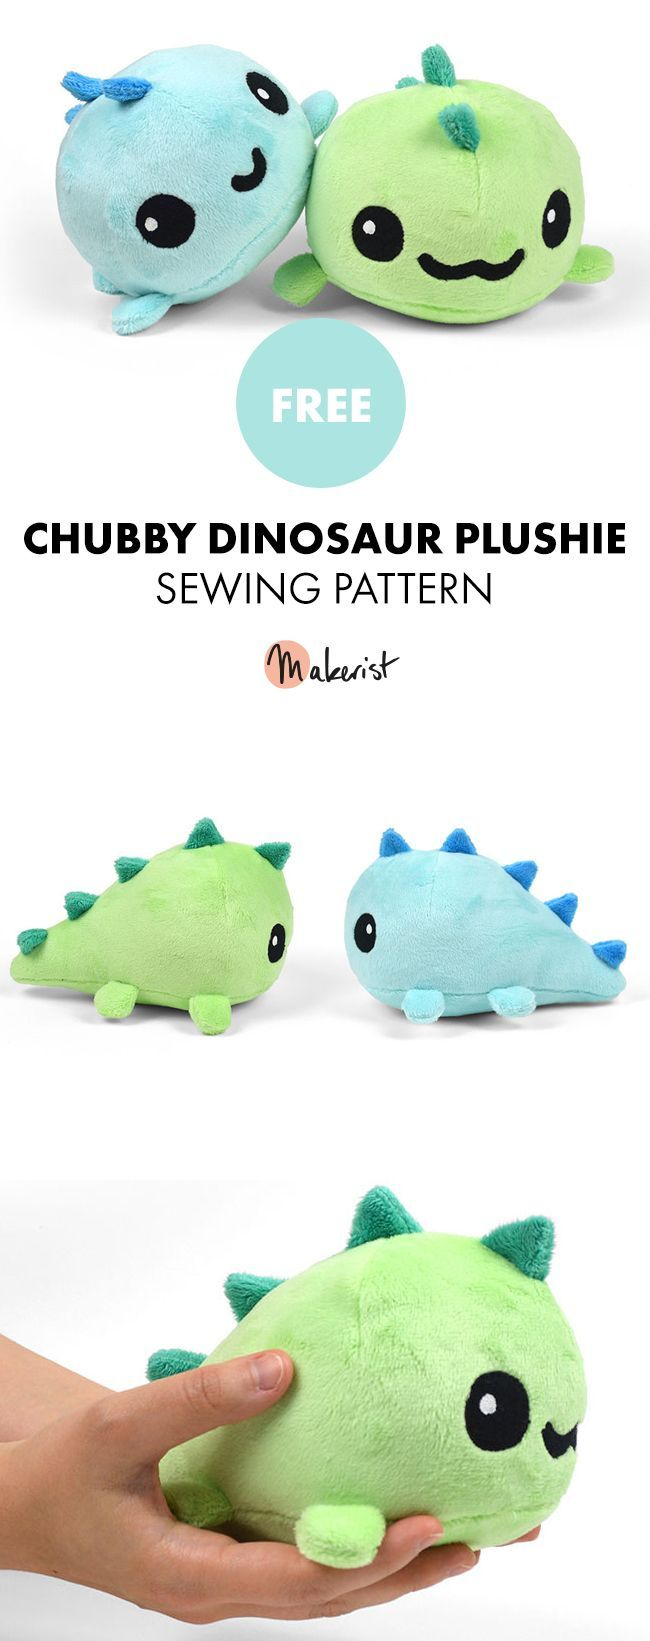 Tiny Dinosaur Chubby Monster Plush Toy Sewing Pattern #stuffedtoyspatterns